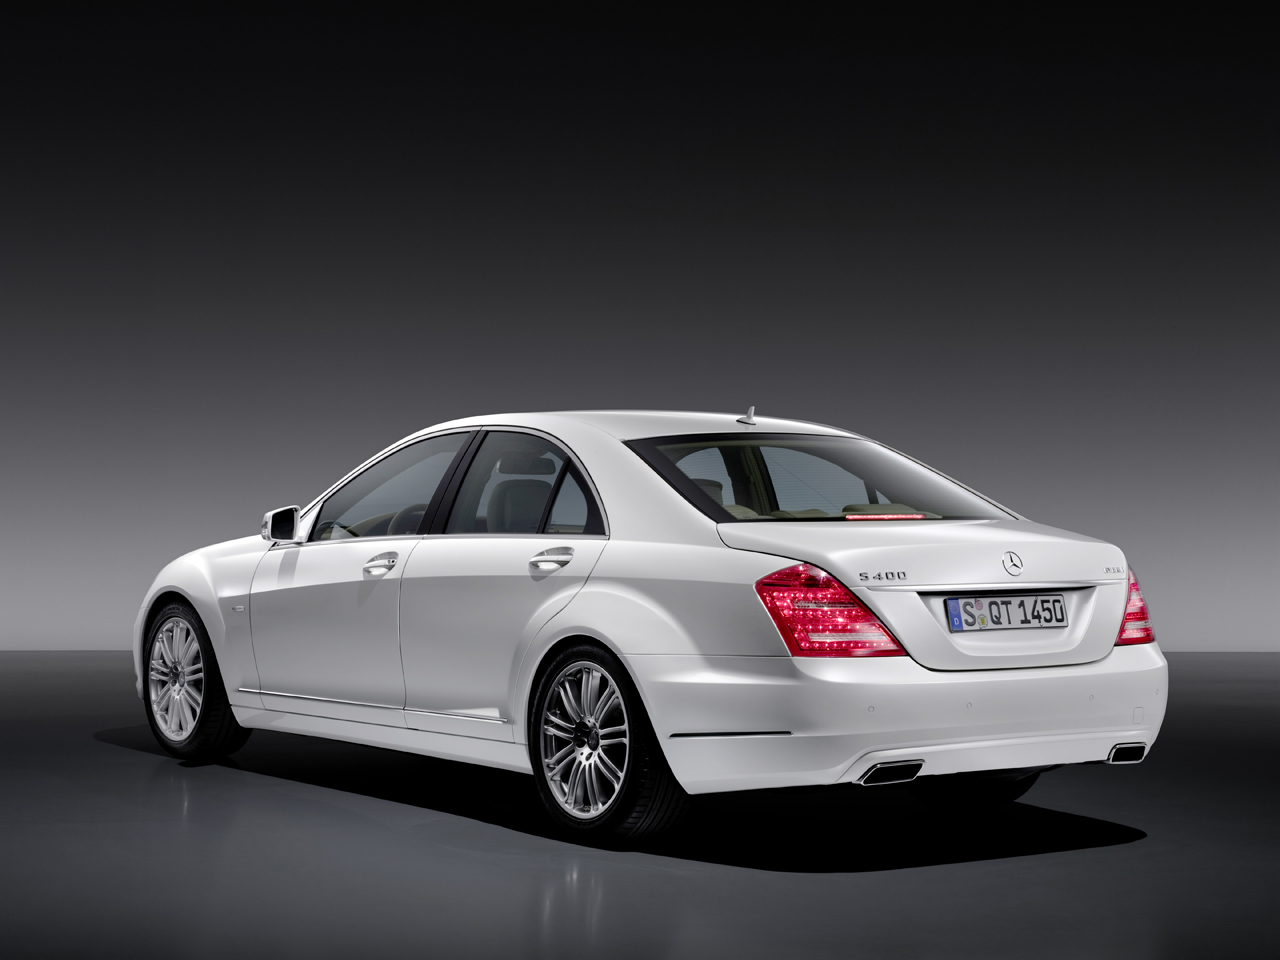 10 Cars Every Bachelor Needs To Own - Mercedes-Benz S400 Hybrid